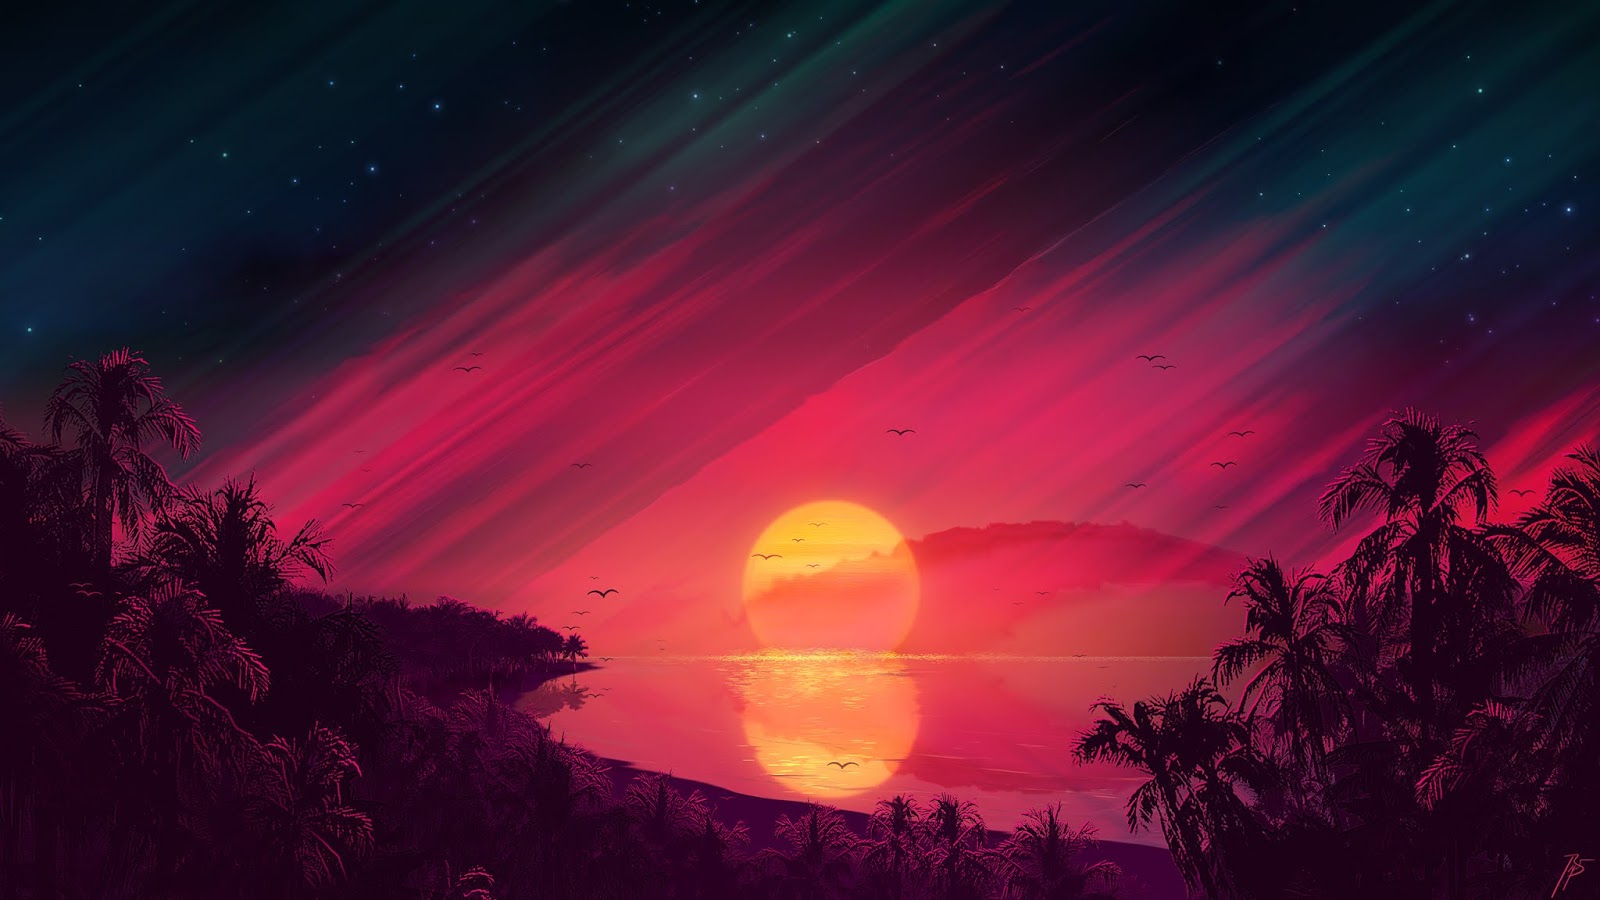 beautiful sunset painting